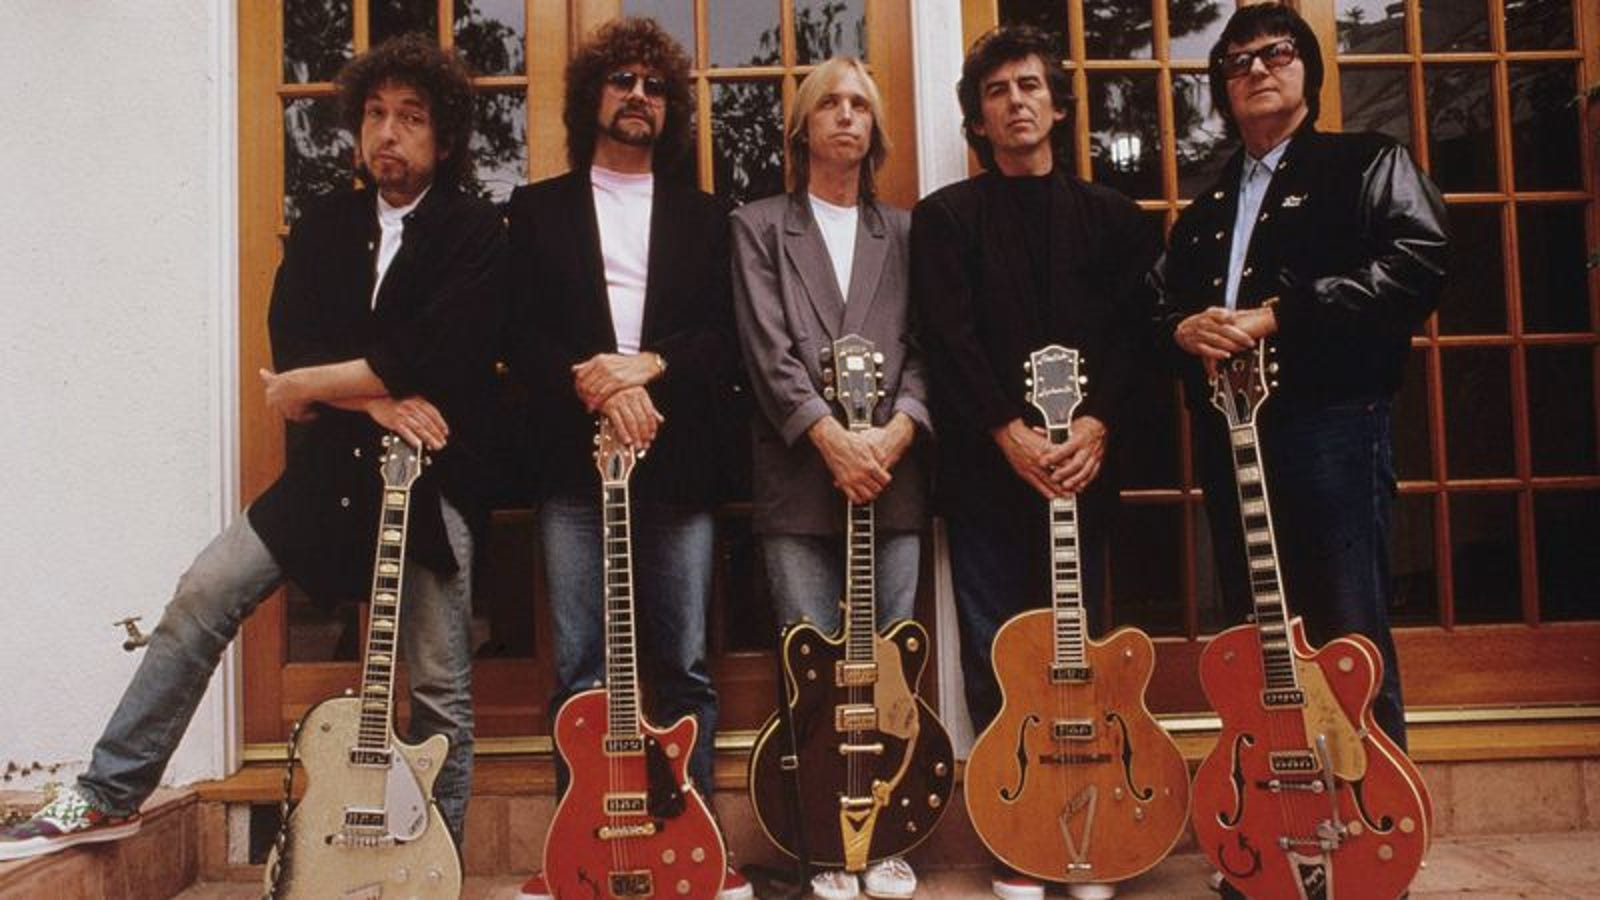 The Traveling Wilburys Came To Terms With Death On End Of The Line